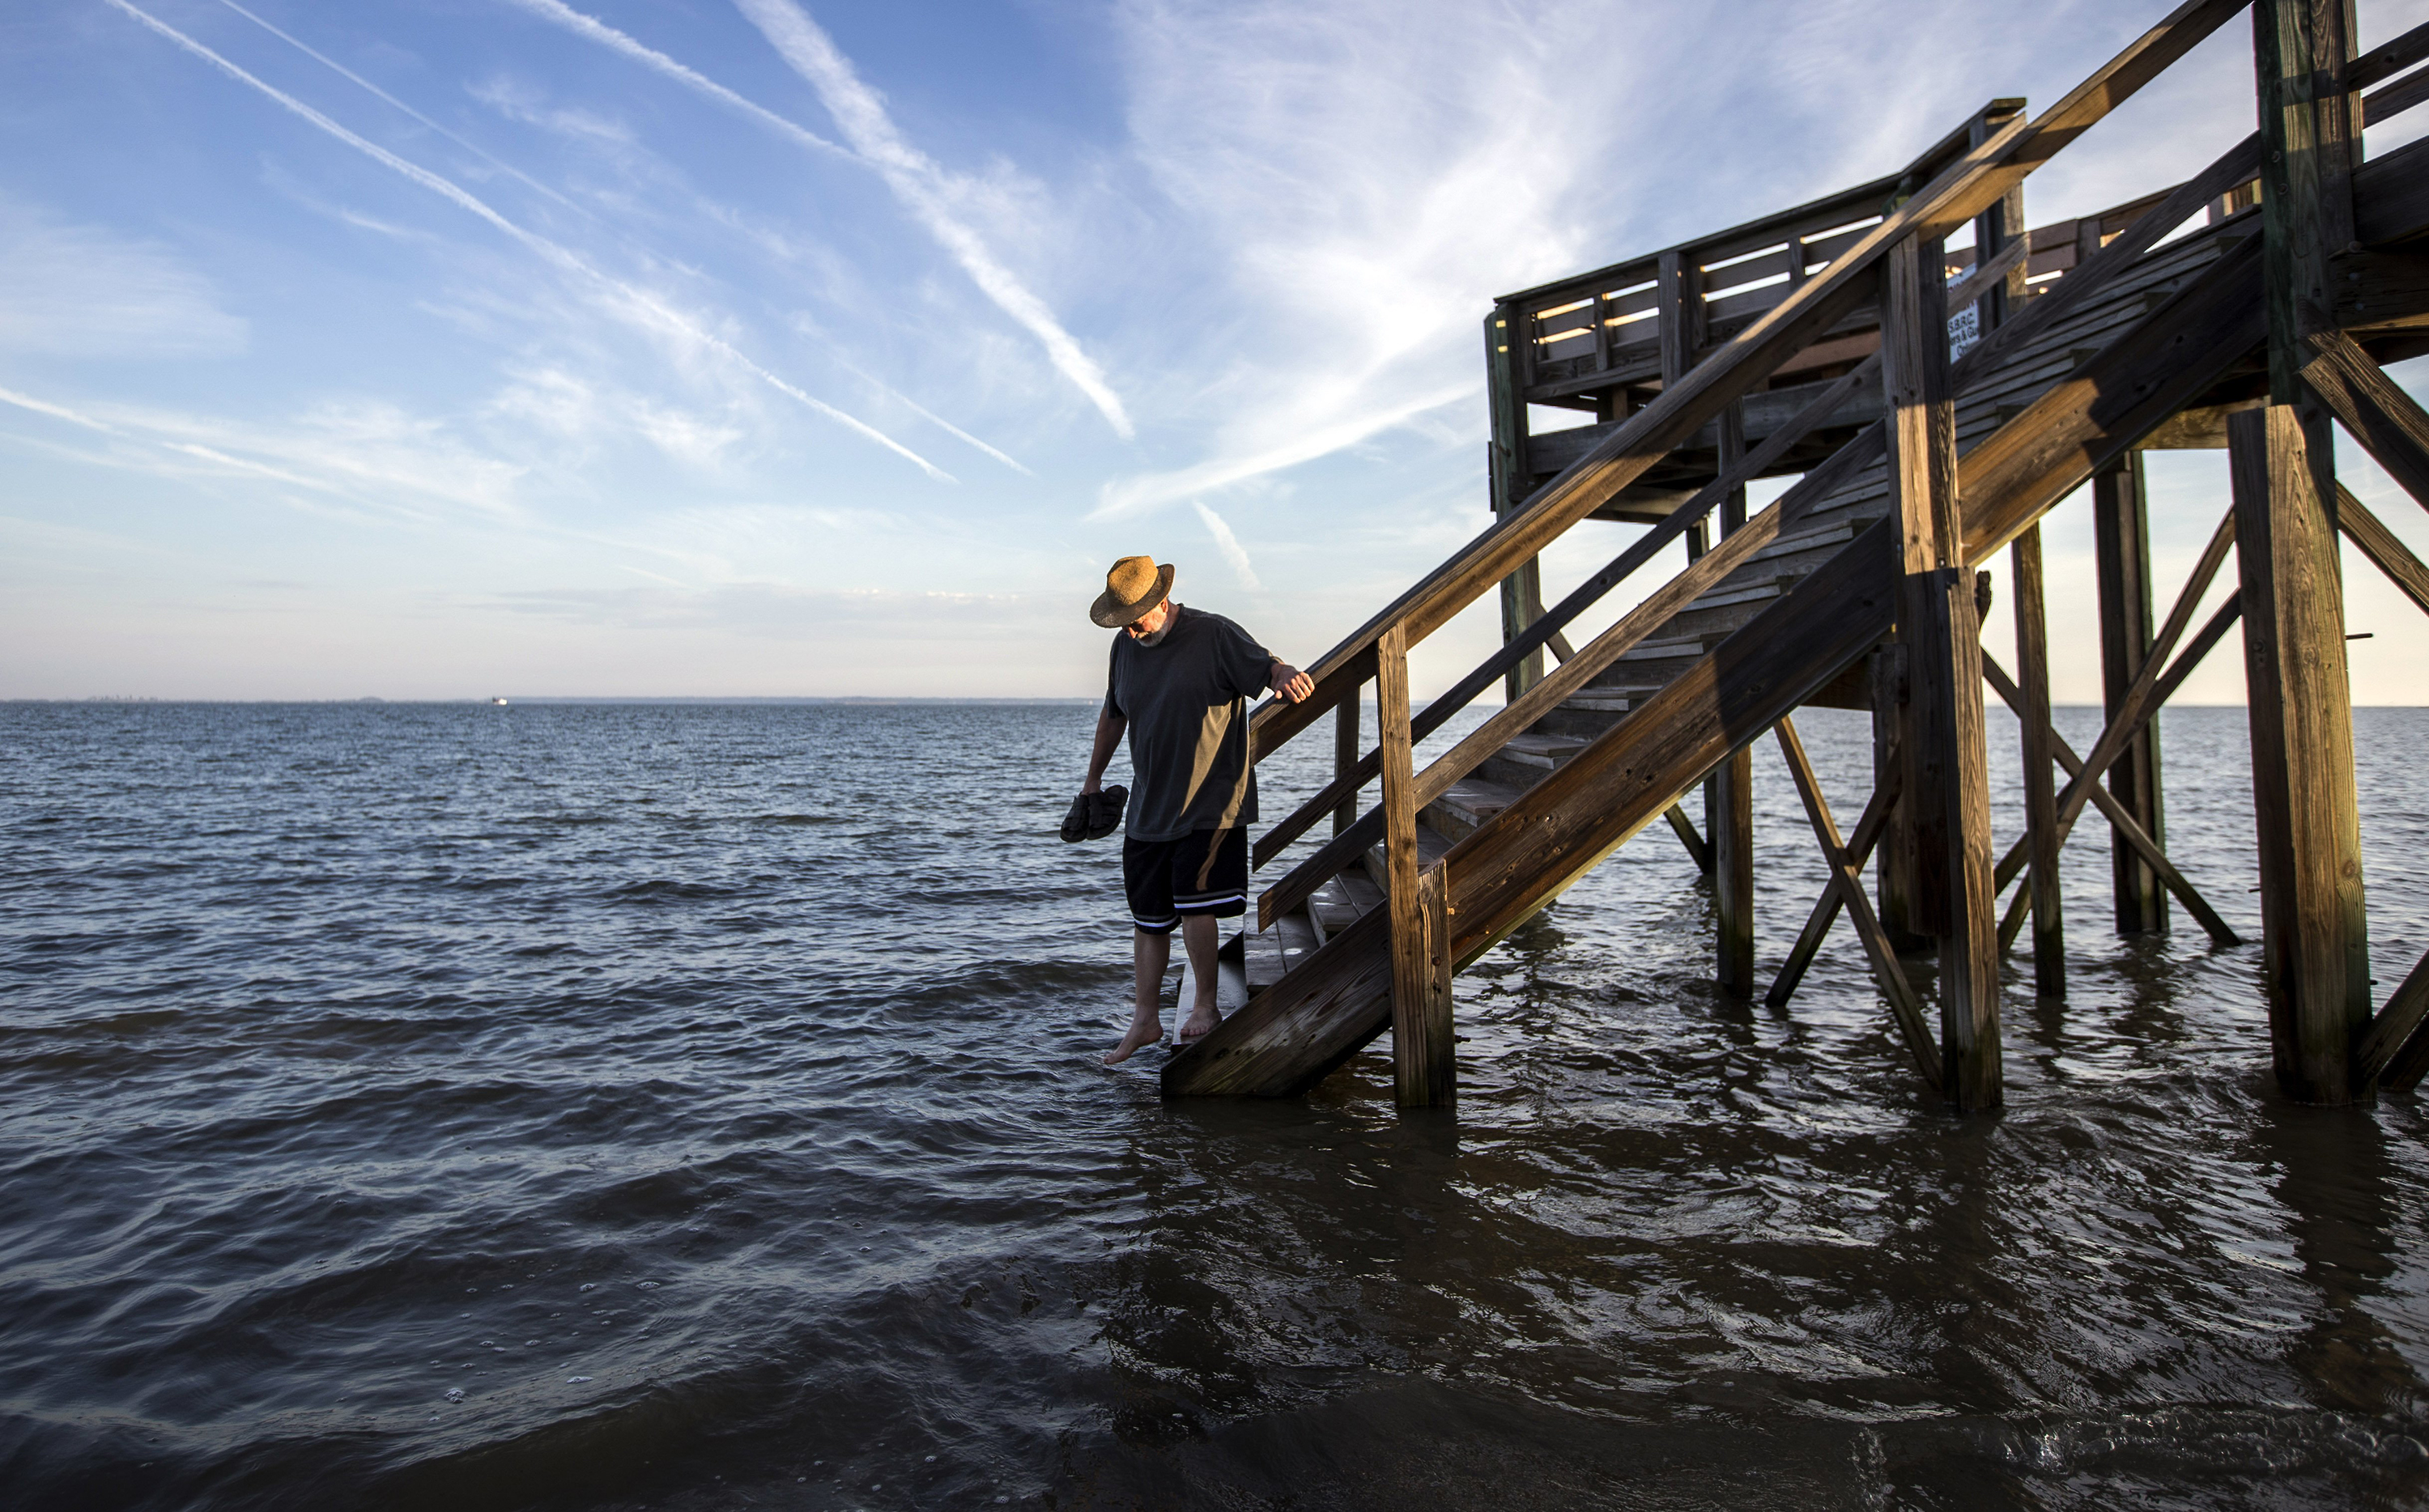 64-year-old Fran Glod of Oswego, N.Y, walks down the steps to the beach which is covered by a king tide high tide, in Tybee Island, Ga. on Oct. 9, 2014.